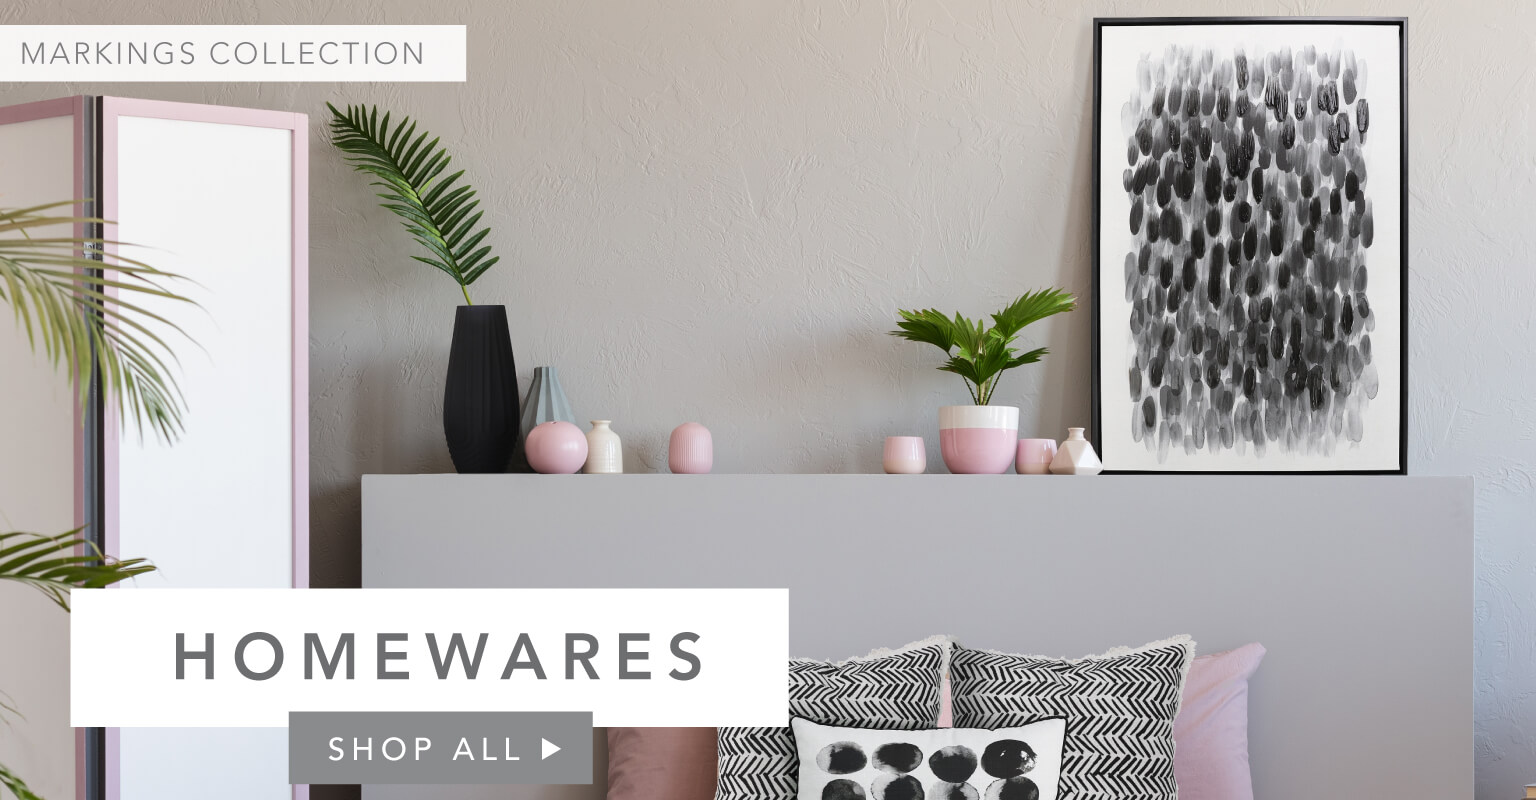 Shop homewares